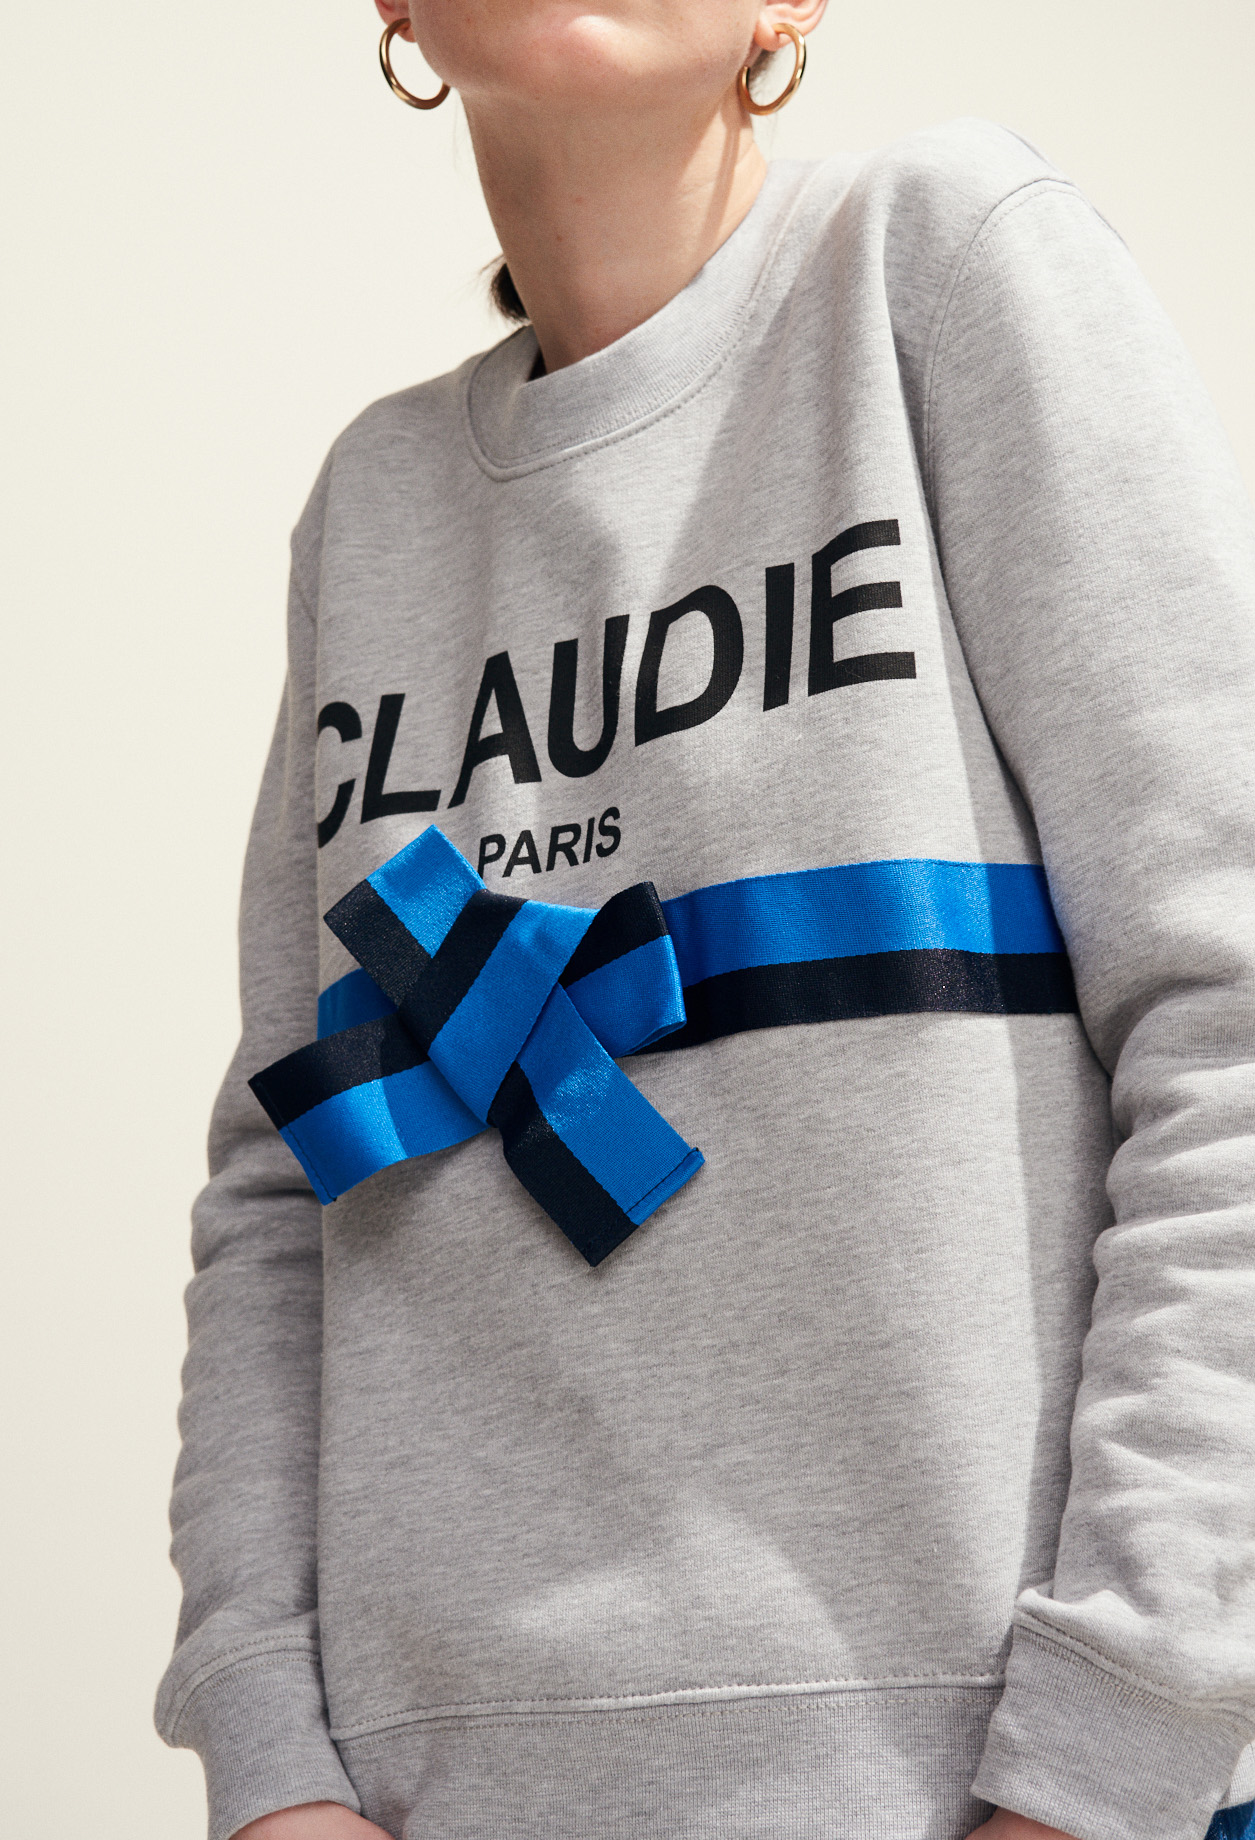 Claudie sweatshirt with bow